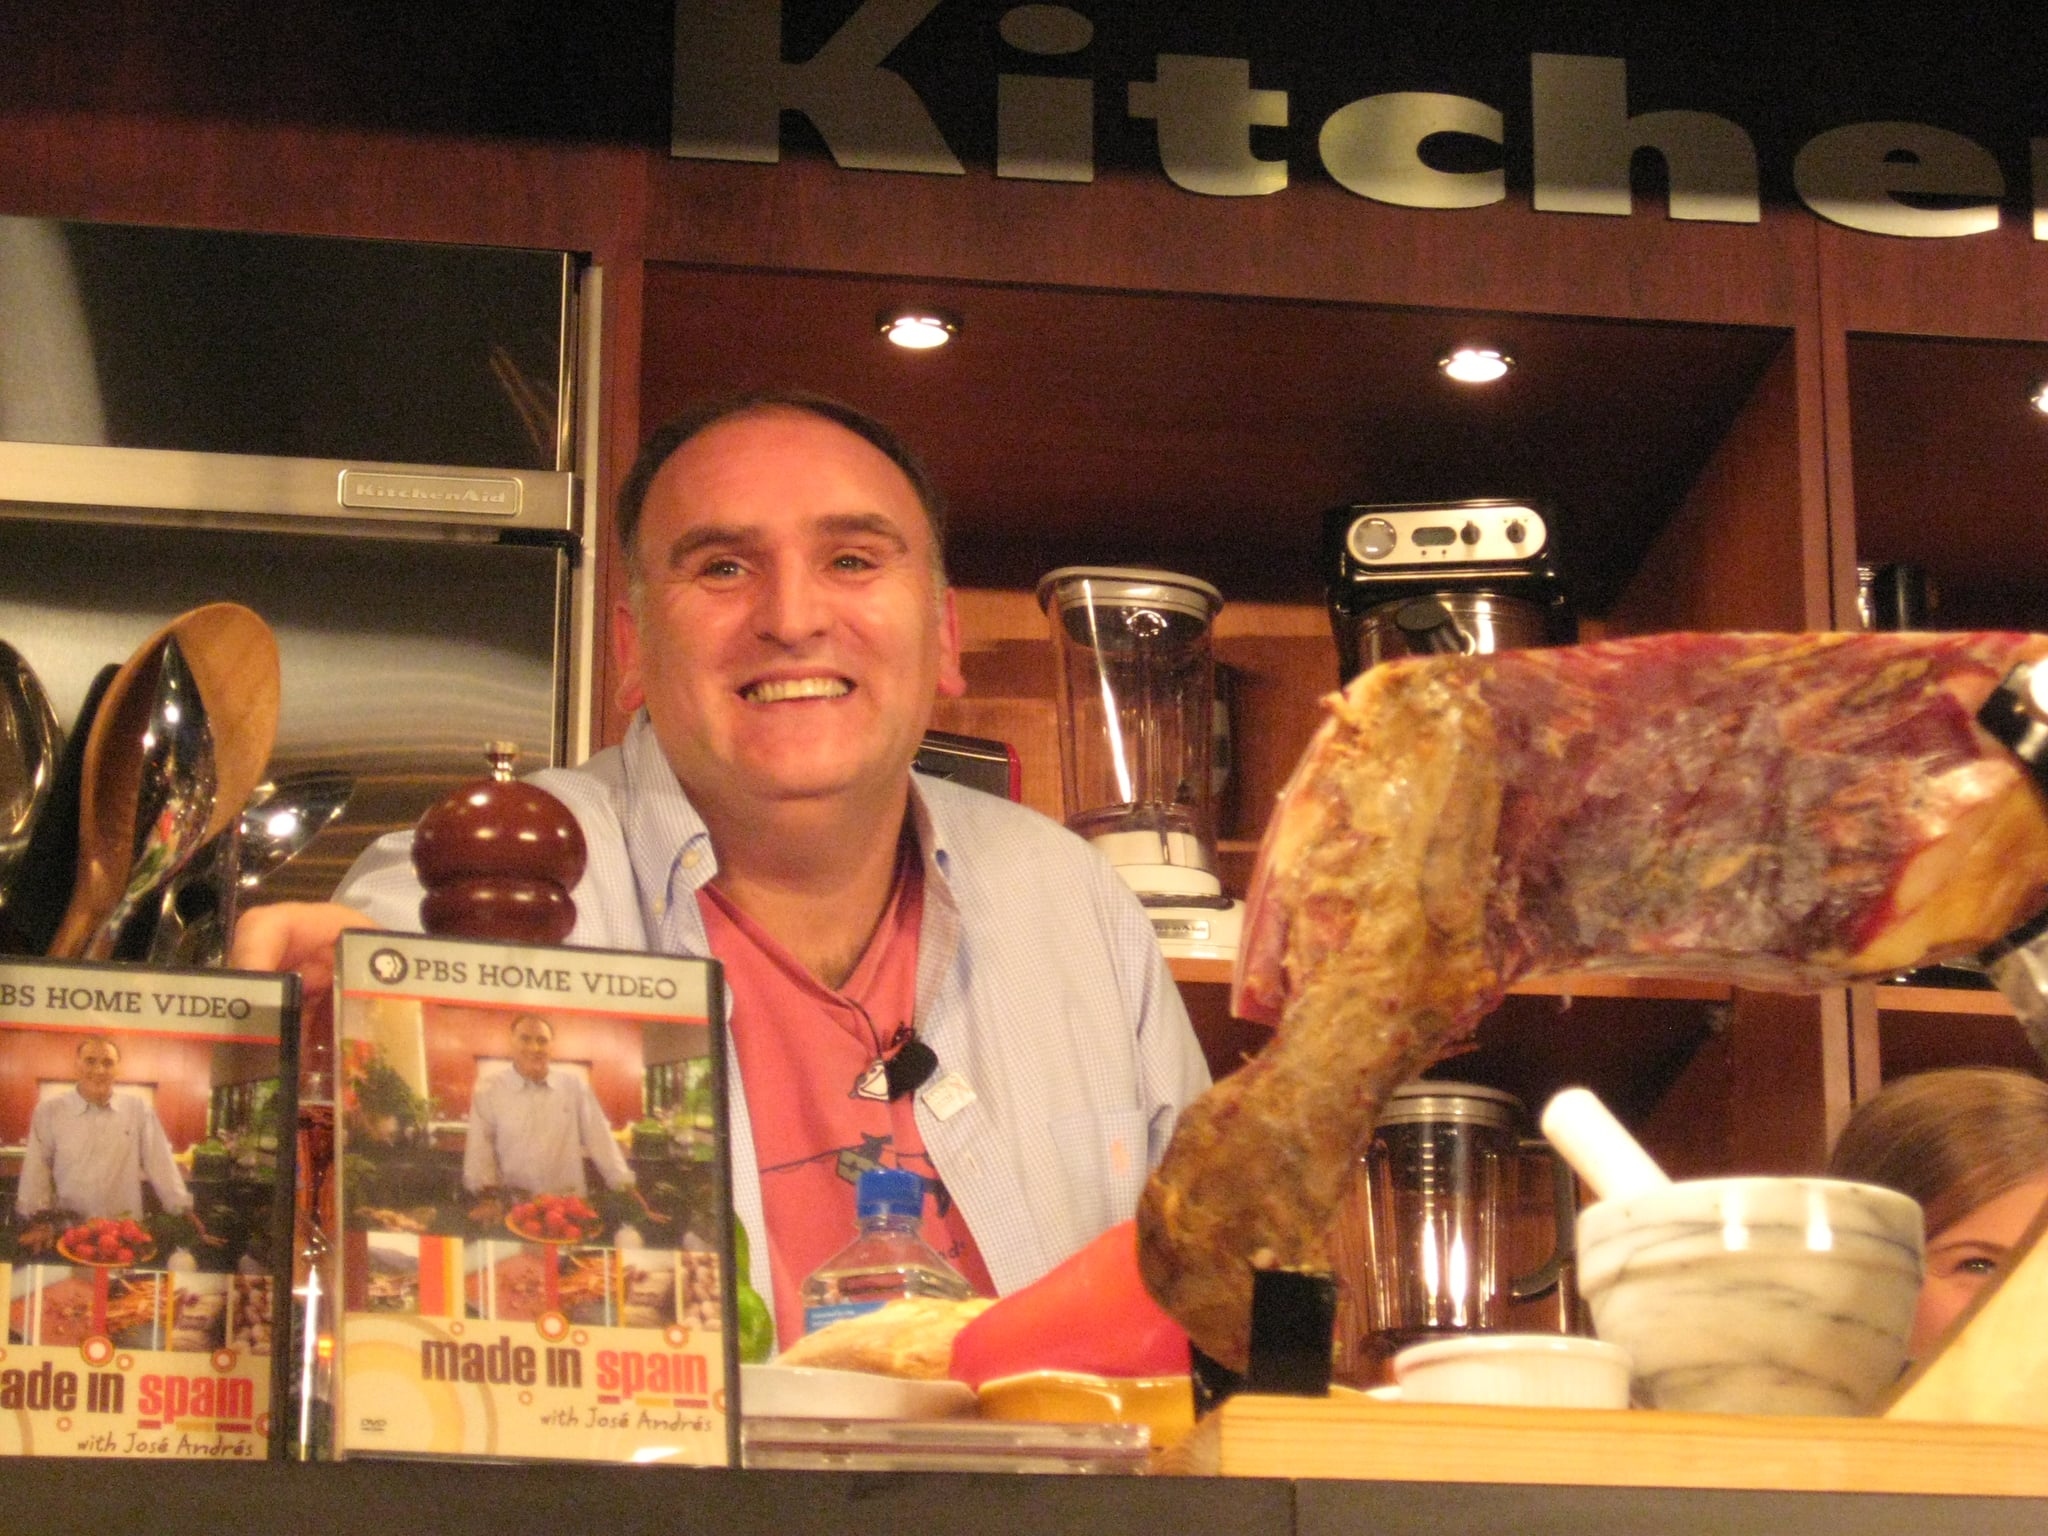 Jose Andres was impressed by my knowledge of Spanish cuisine!